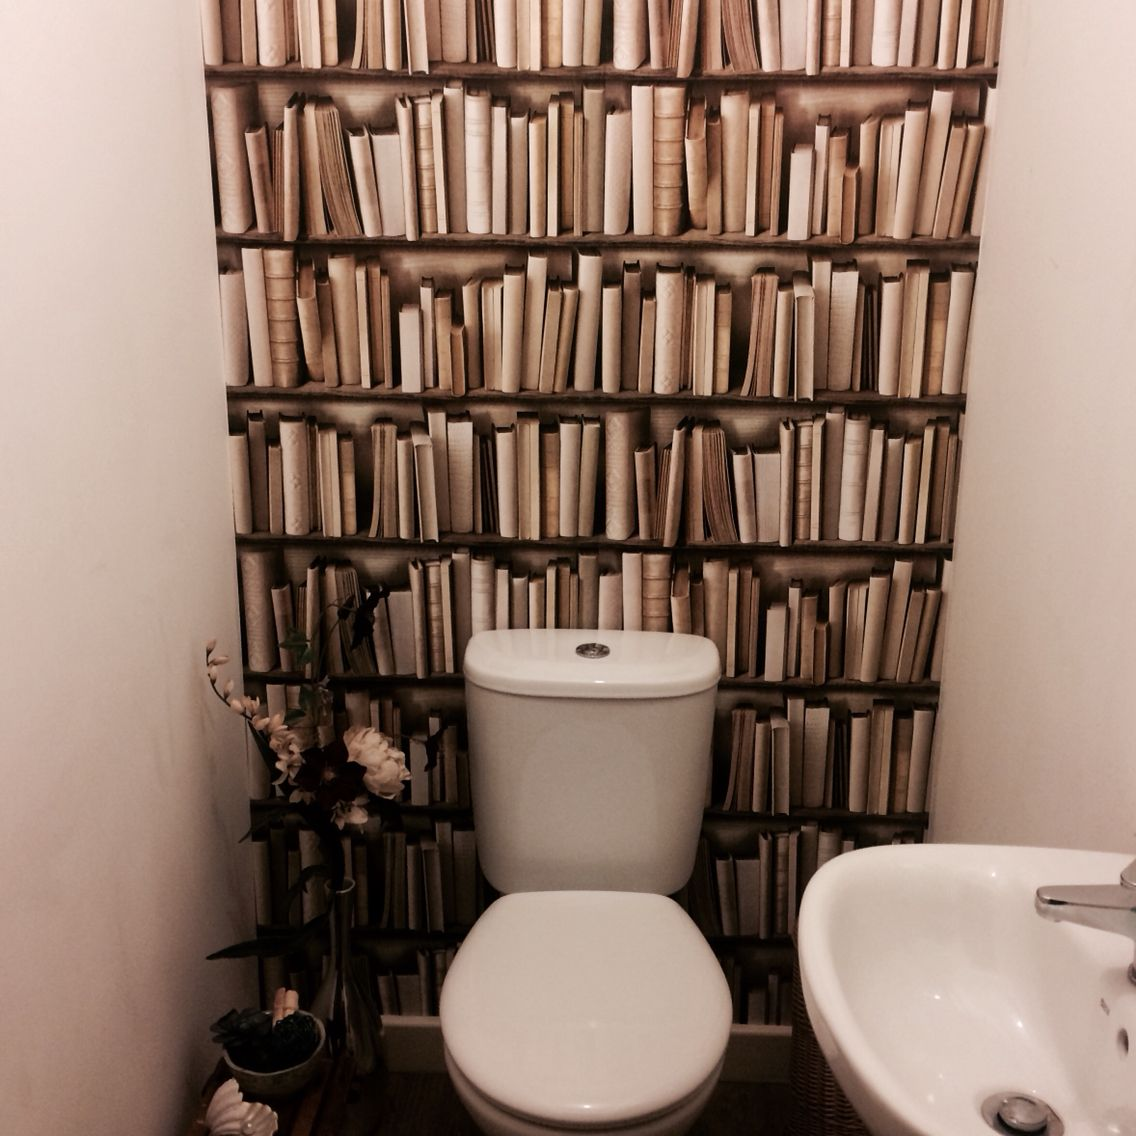 Book wallpaper in our downstairs toilet home decor for Funky bathroom wallpaper ideas